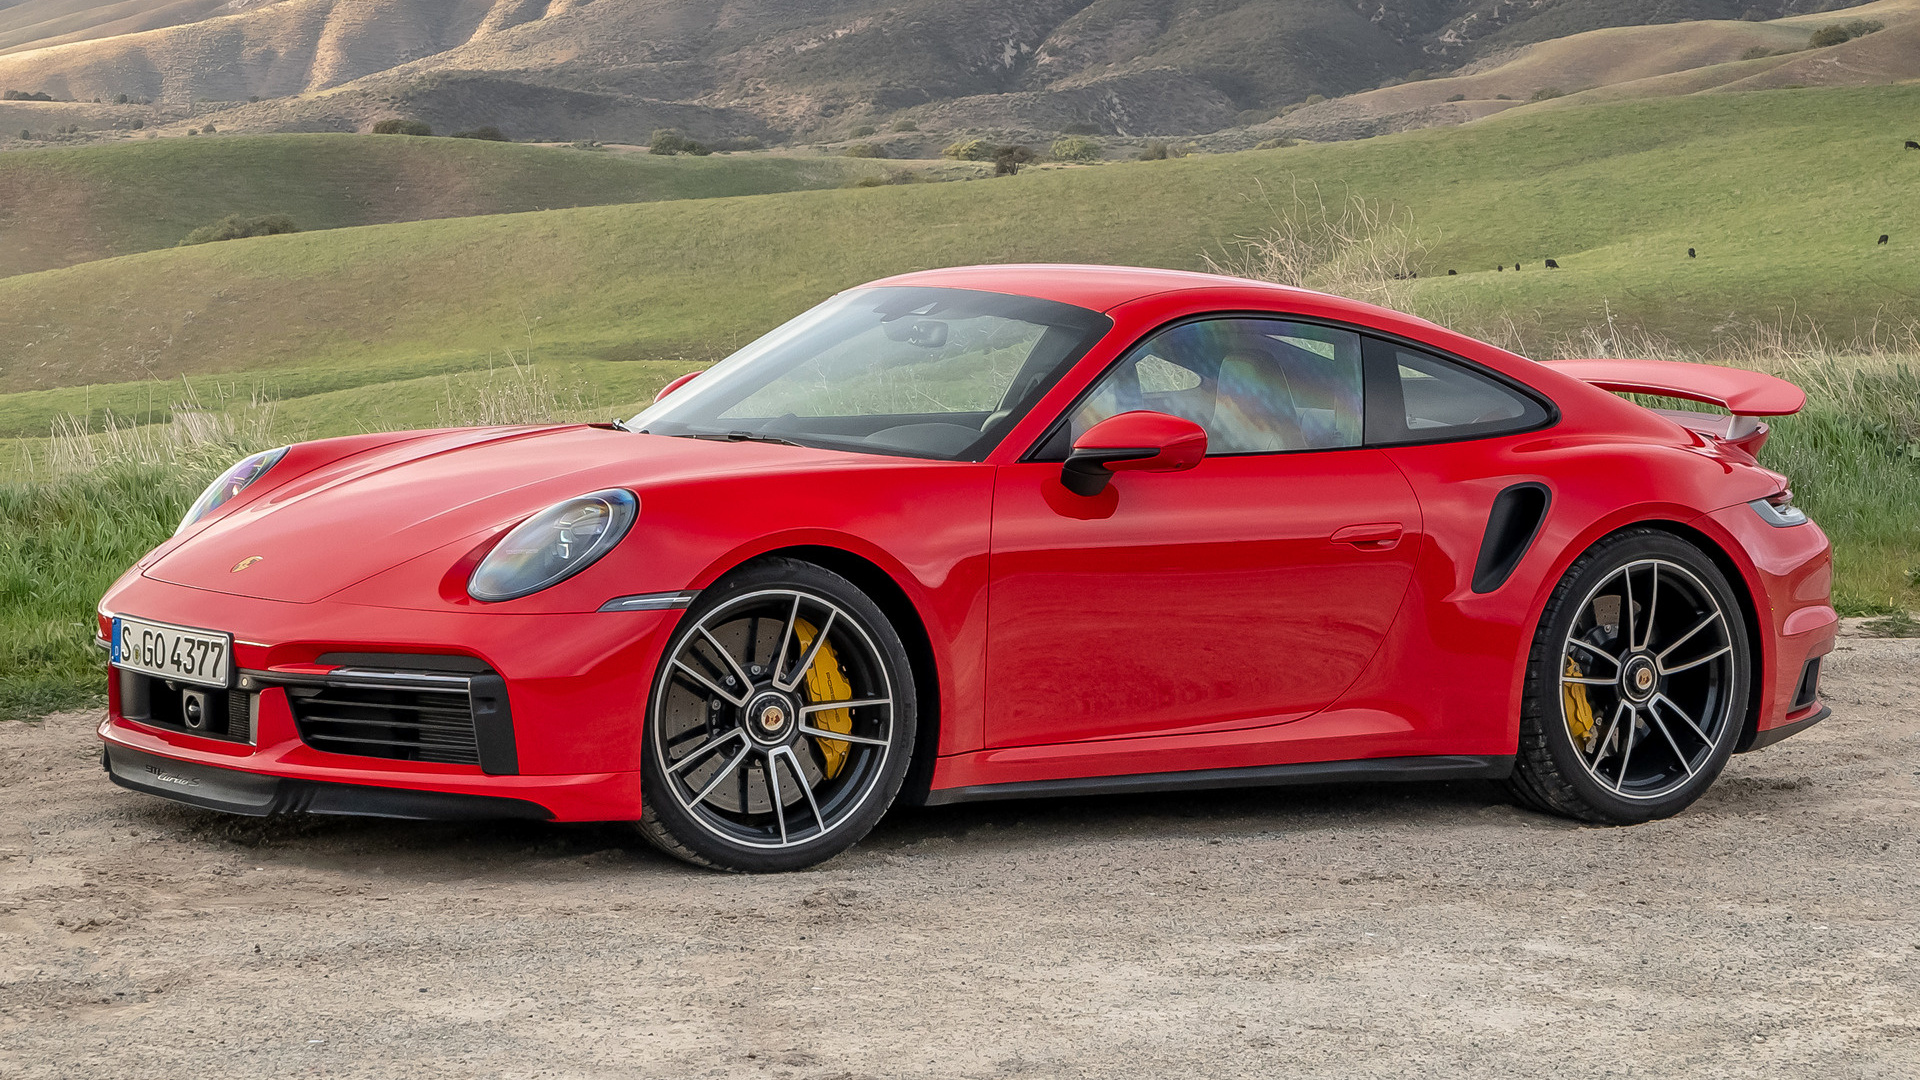 2020 Porsche 911 Turbo S Wallpapers And Hd Images Car Pixel